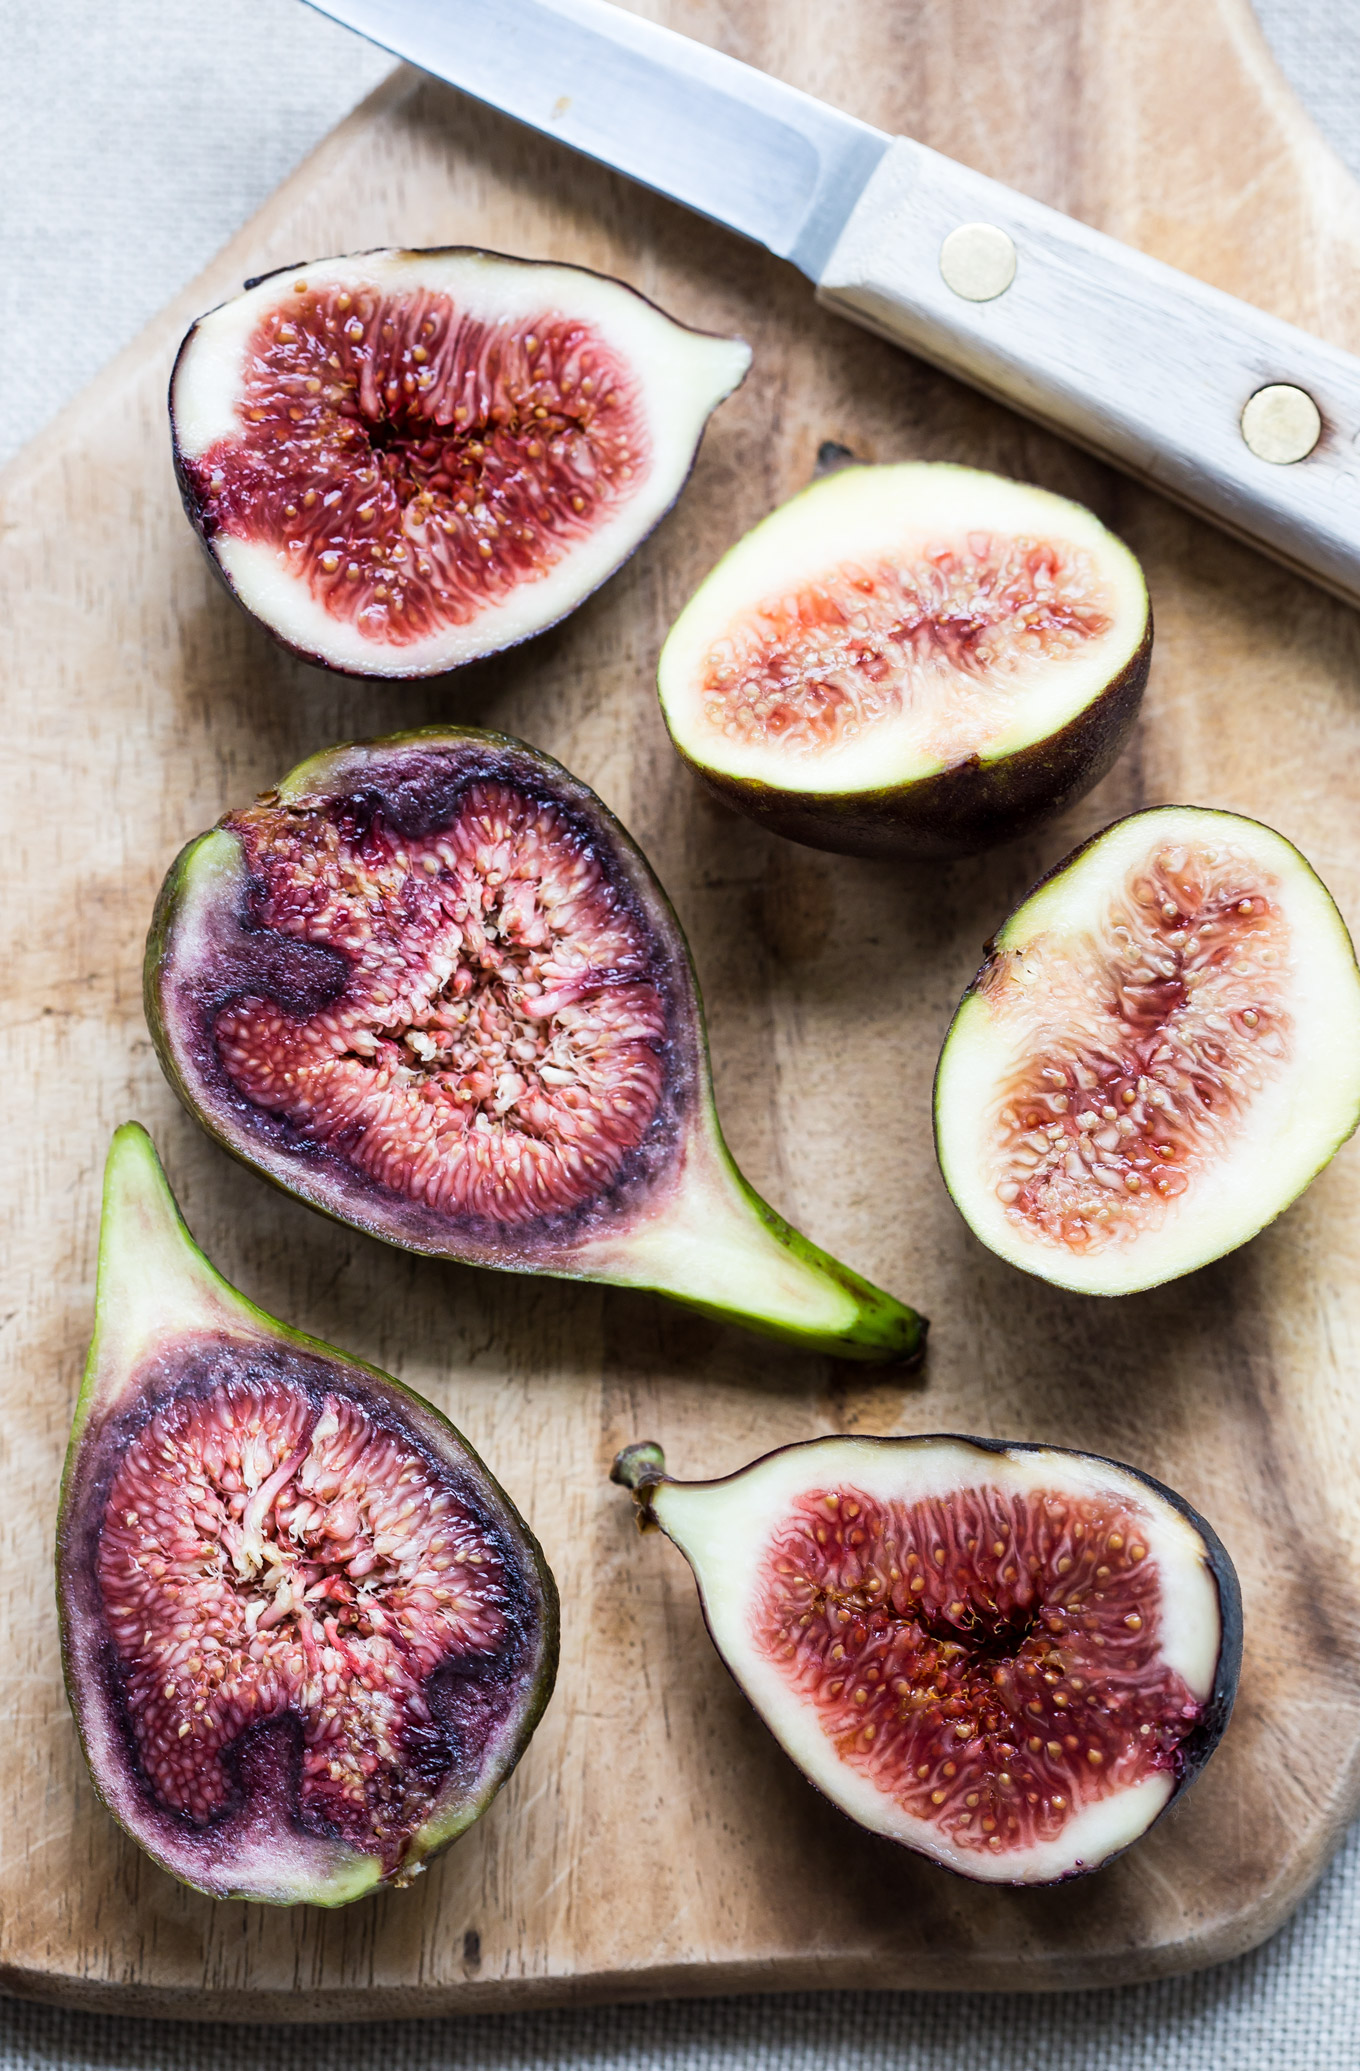 Fresh figs sliced in half lengthwise